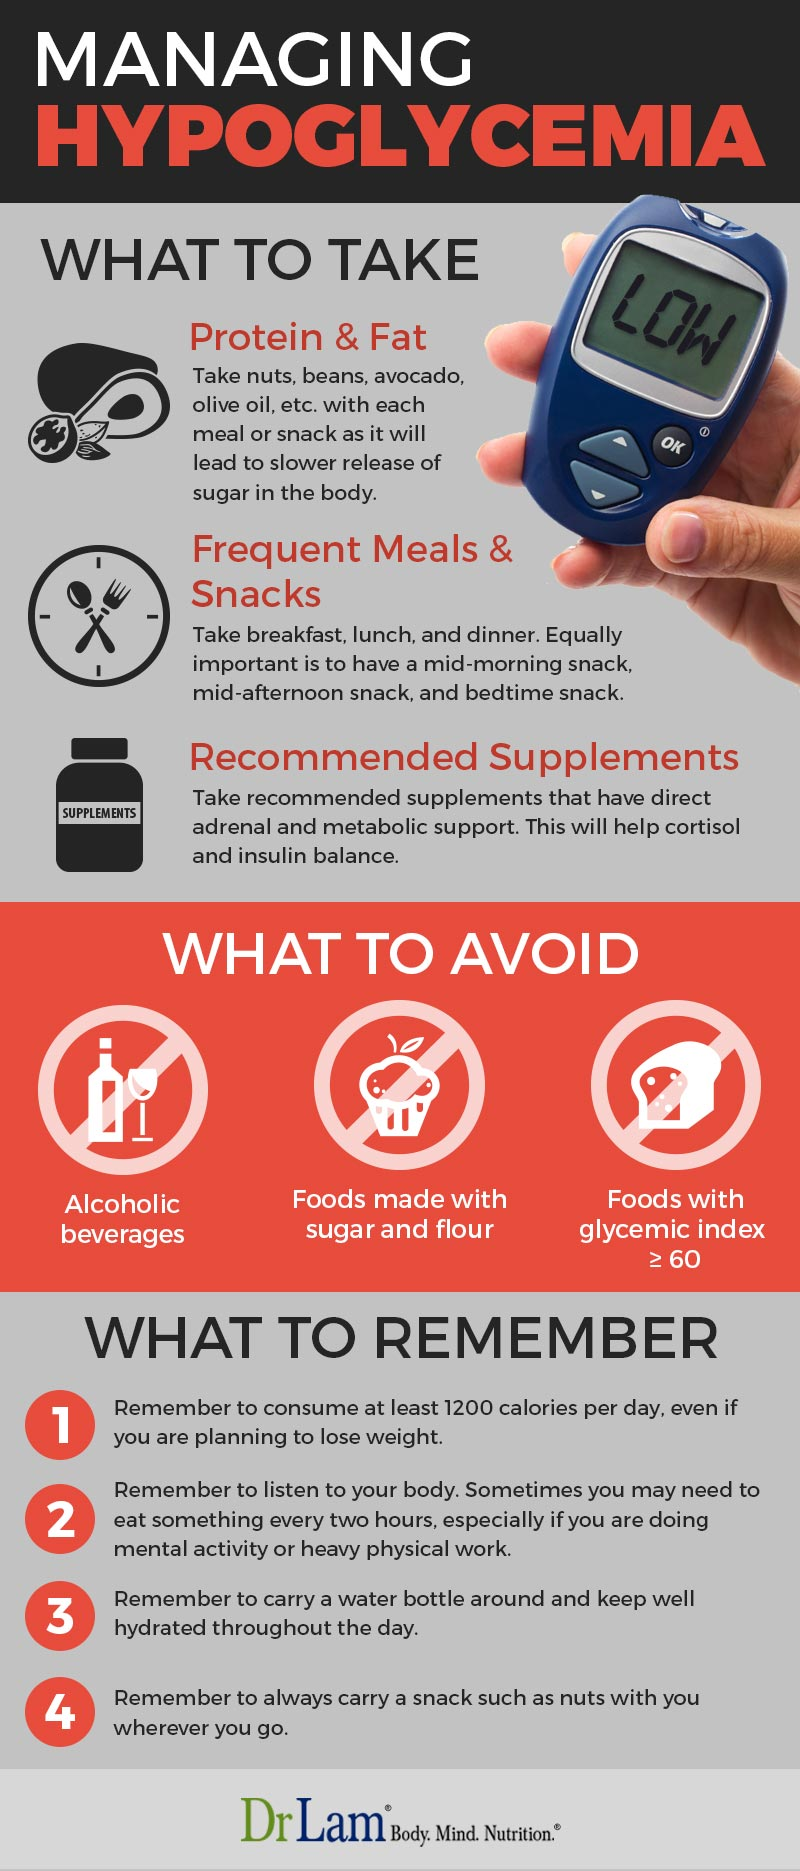 Check out this easy to understand infographic about how to manage a hypoglycemia meal plan